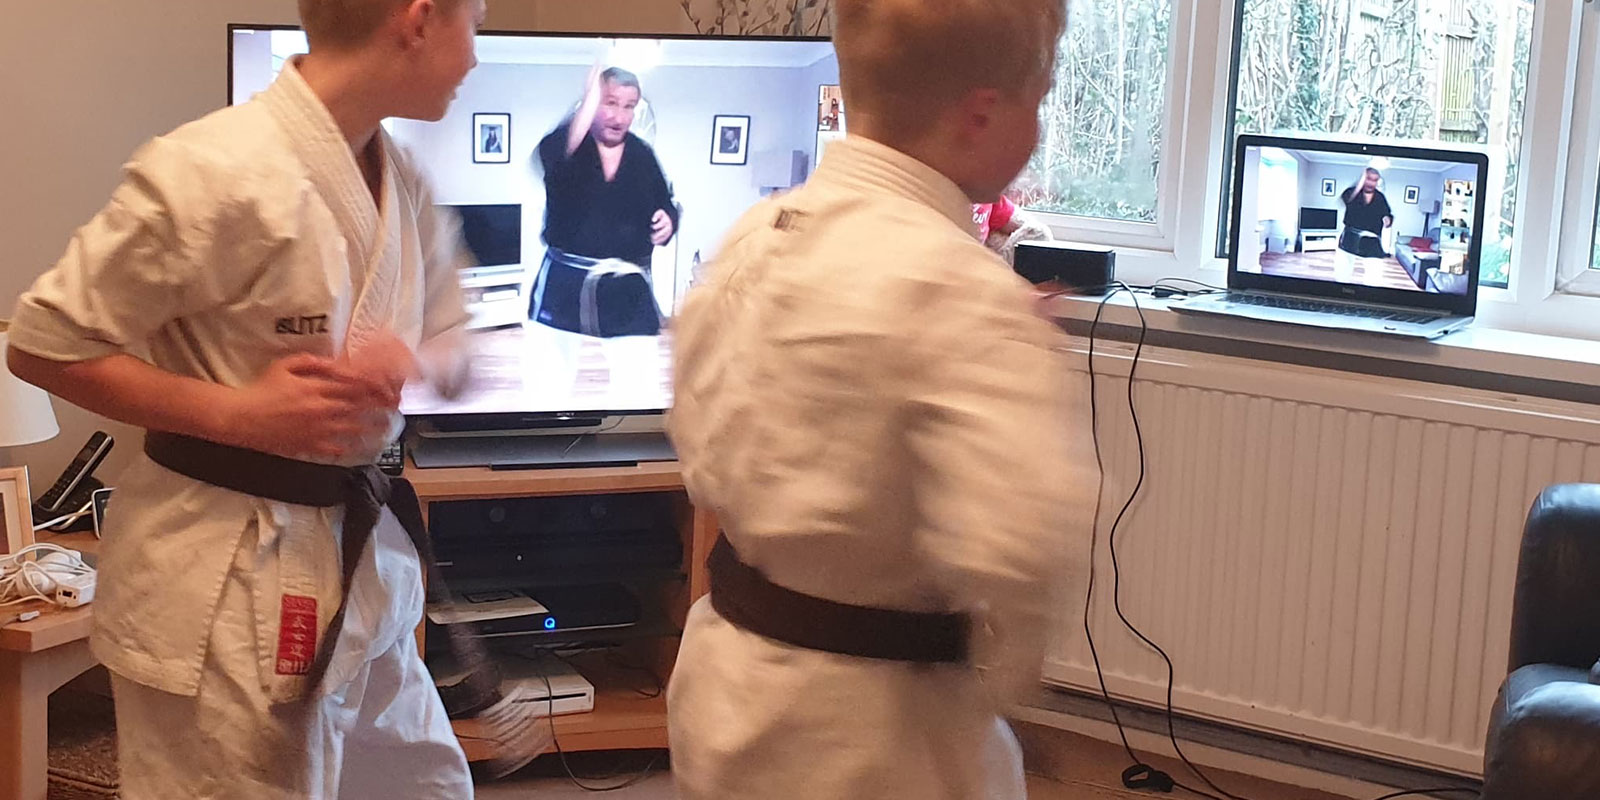 Live streamed karate classes. Take lessons in your home